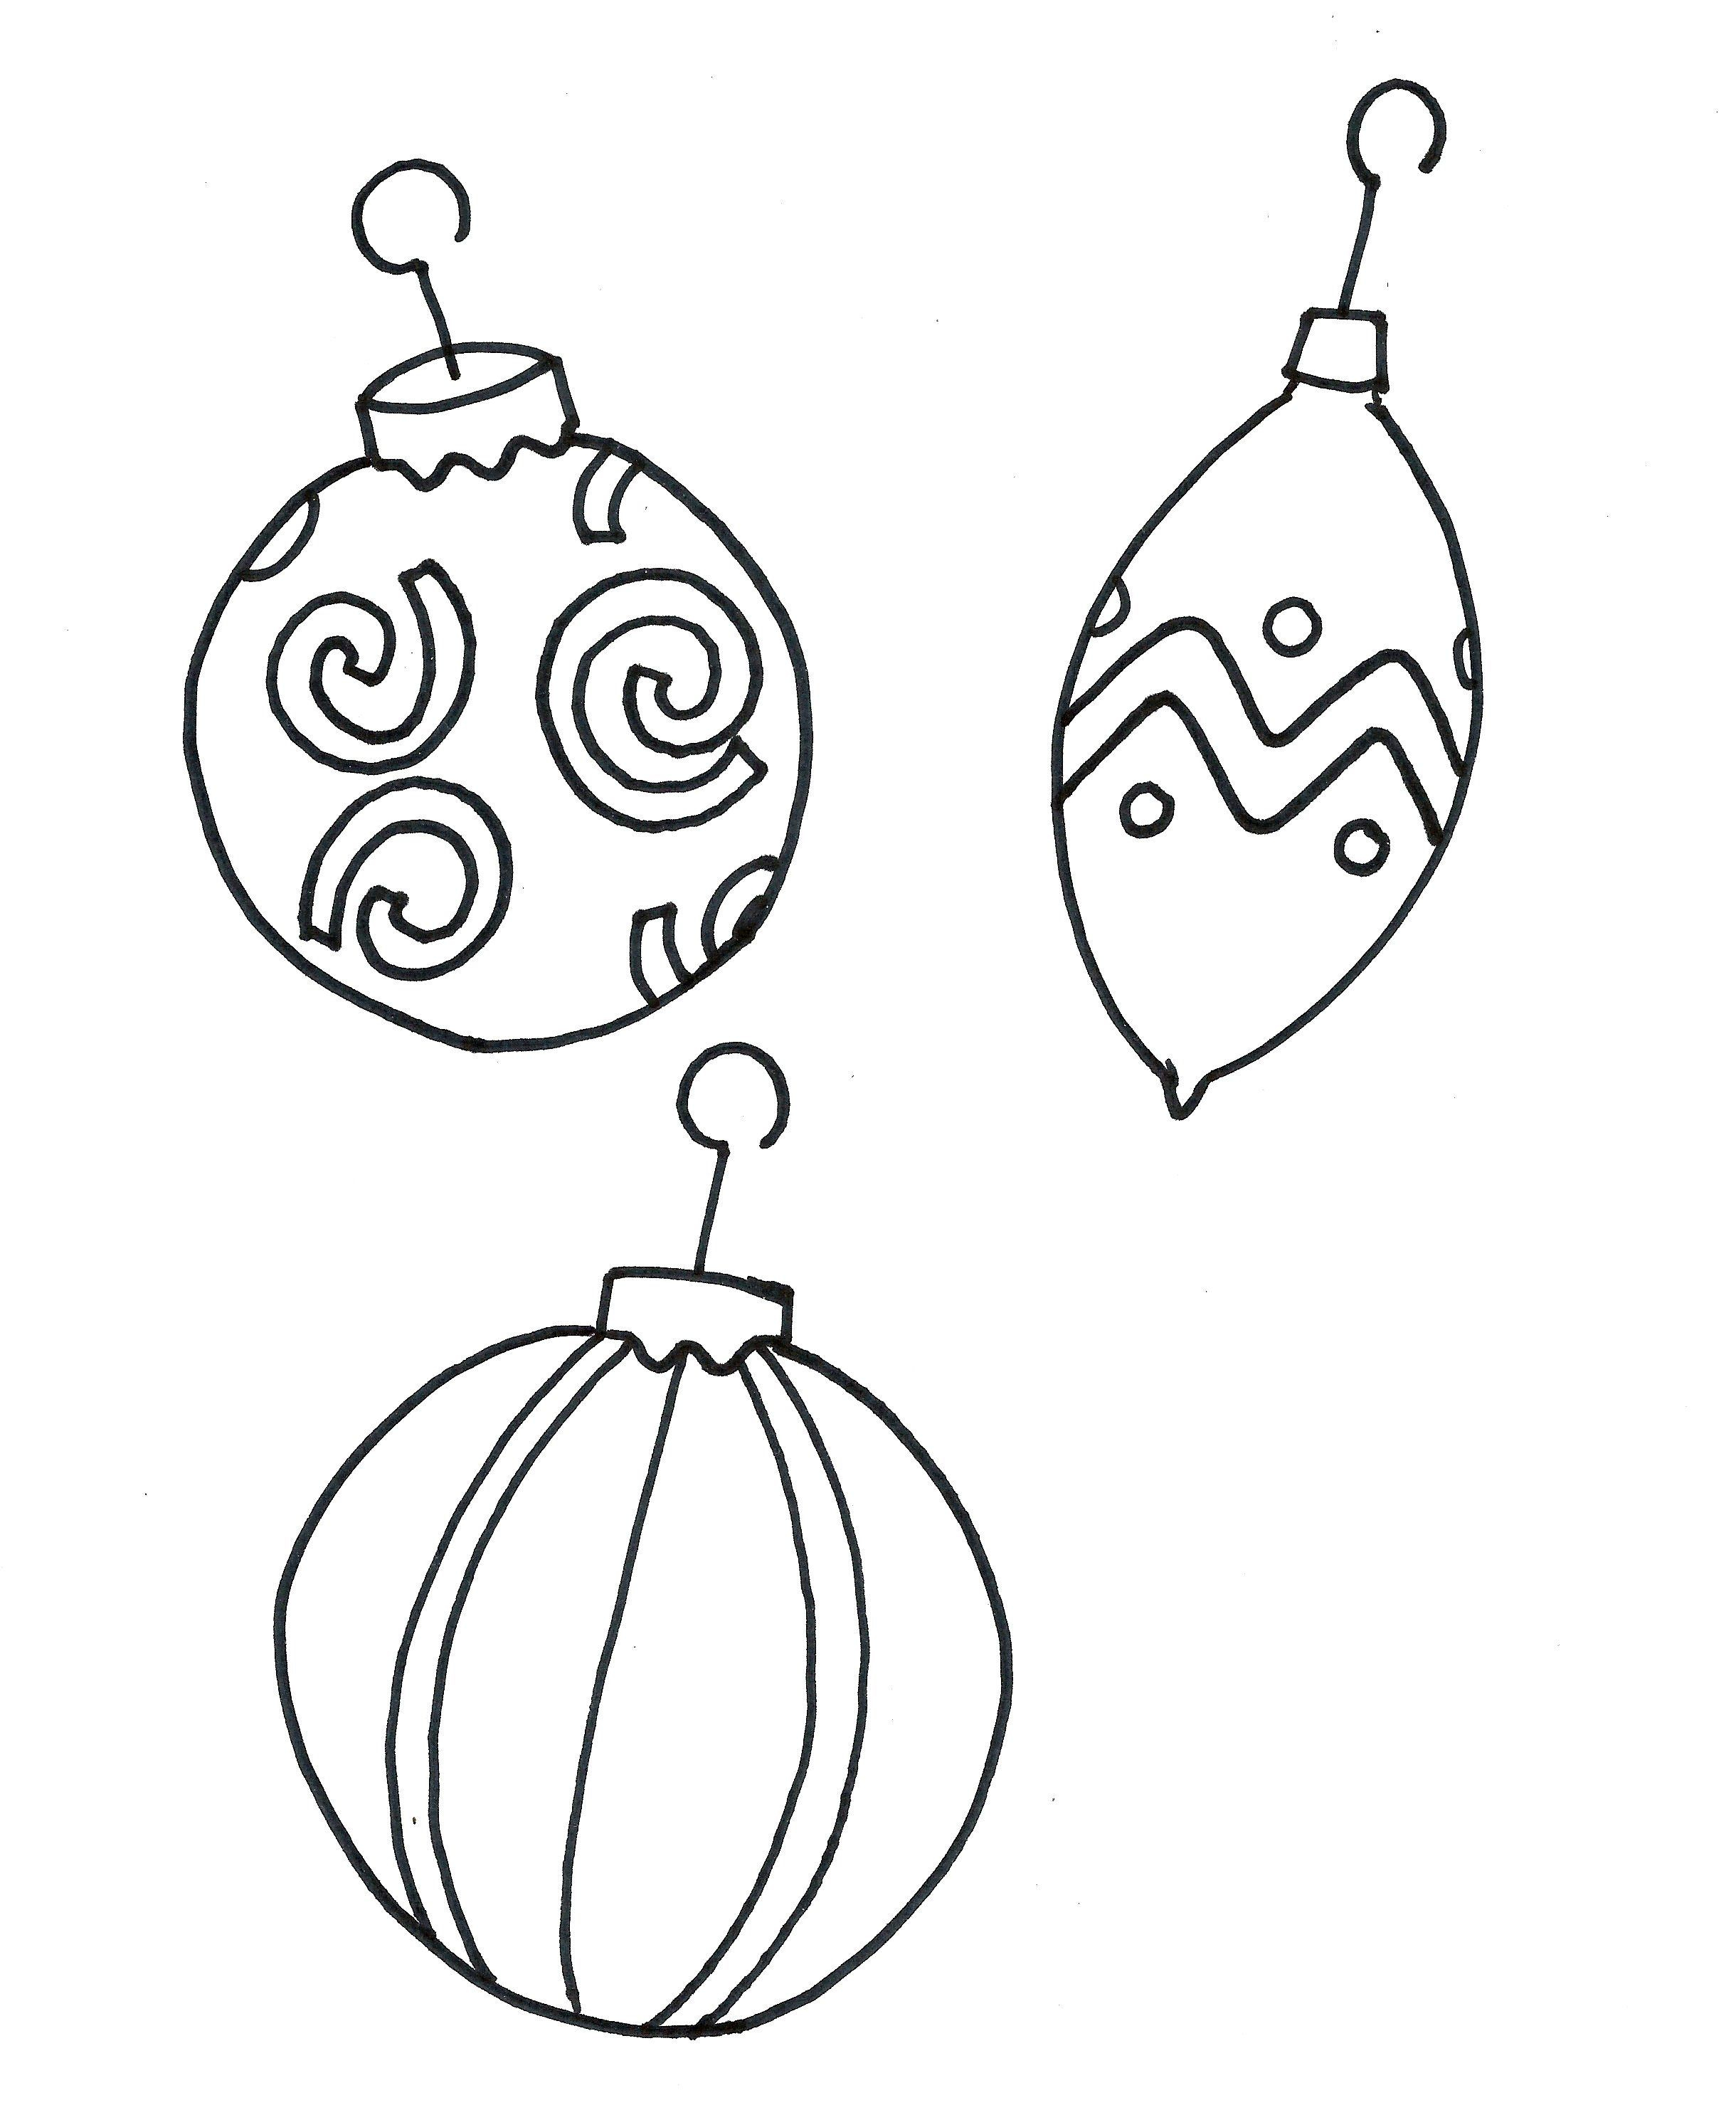 Printable Coloring Pages Christmas Ornament Free | Christmas Crafts - Free Printable Christmas Tree Ornaments Coloring Pages